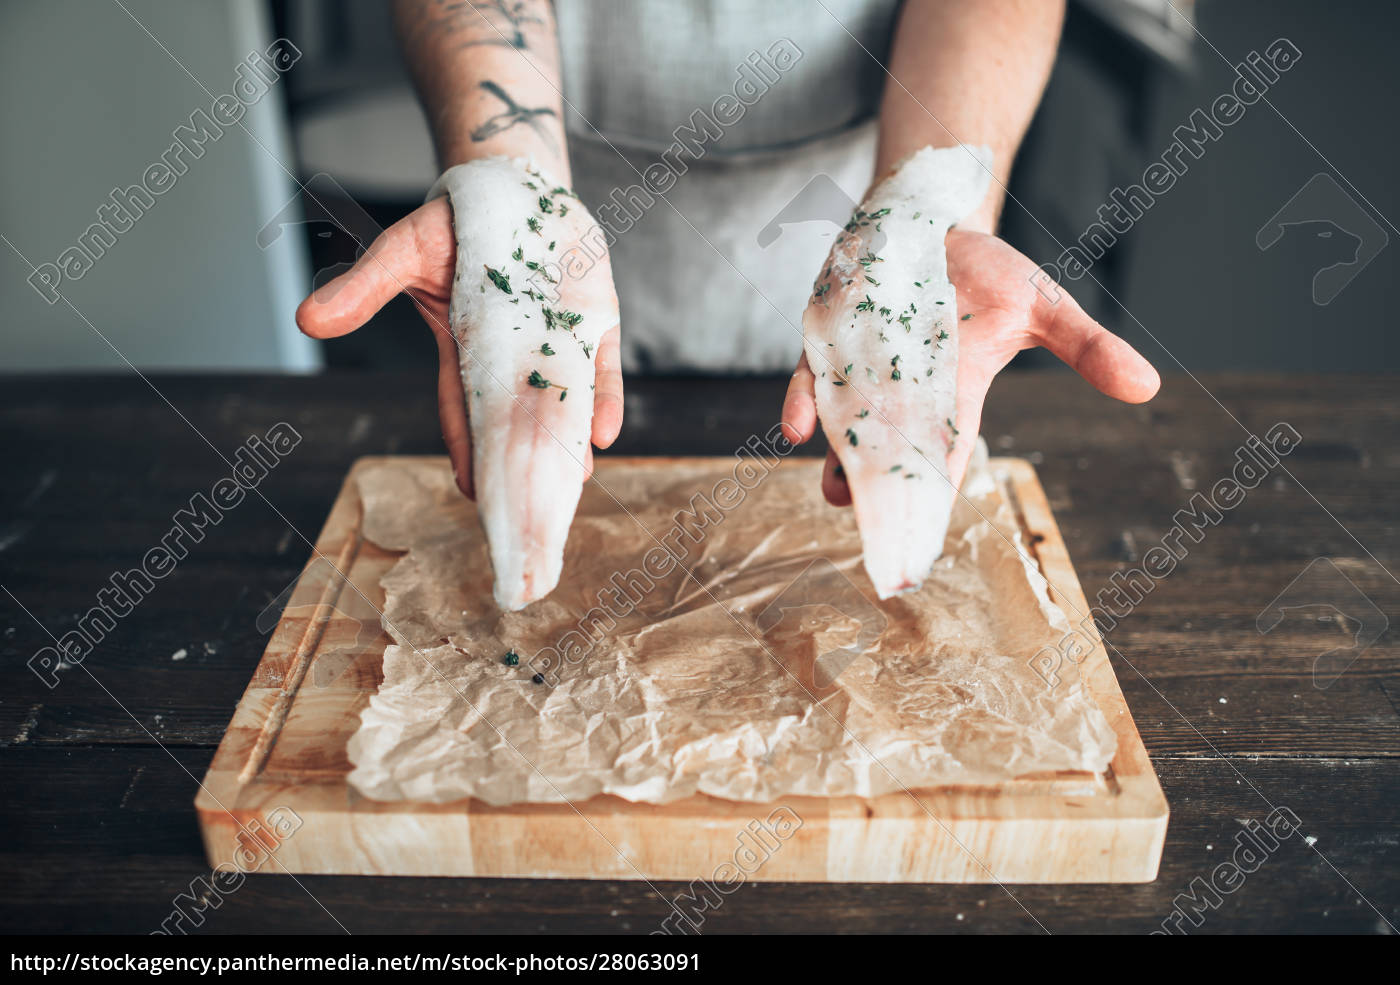 chef, hands, holds, raw, fish, slices - 28063091